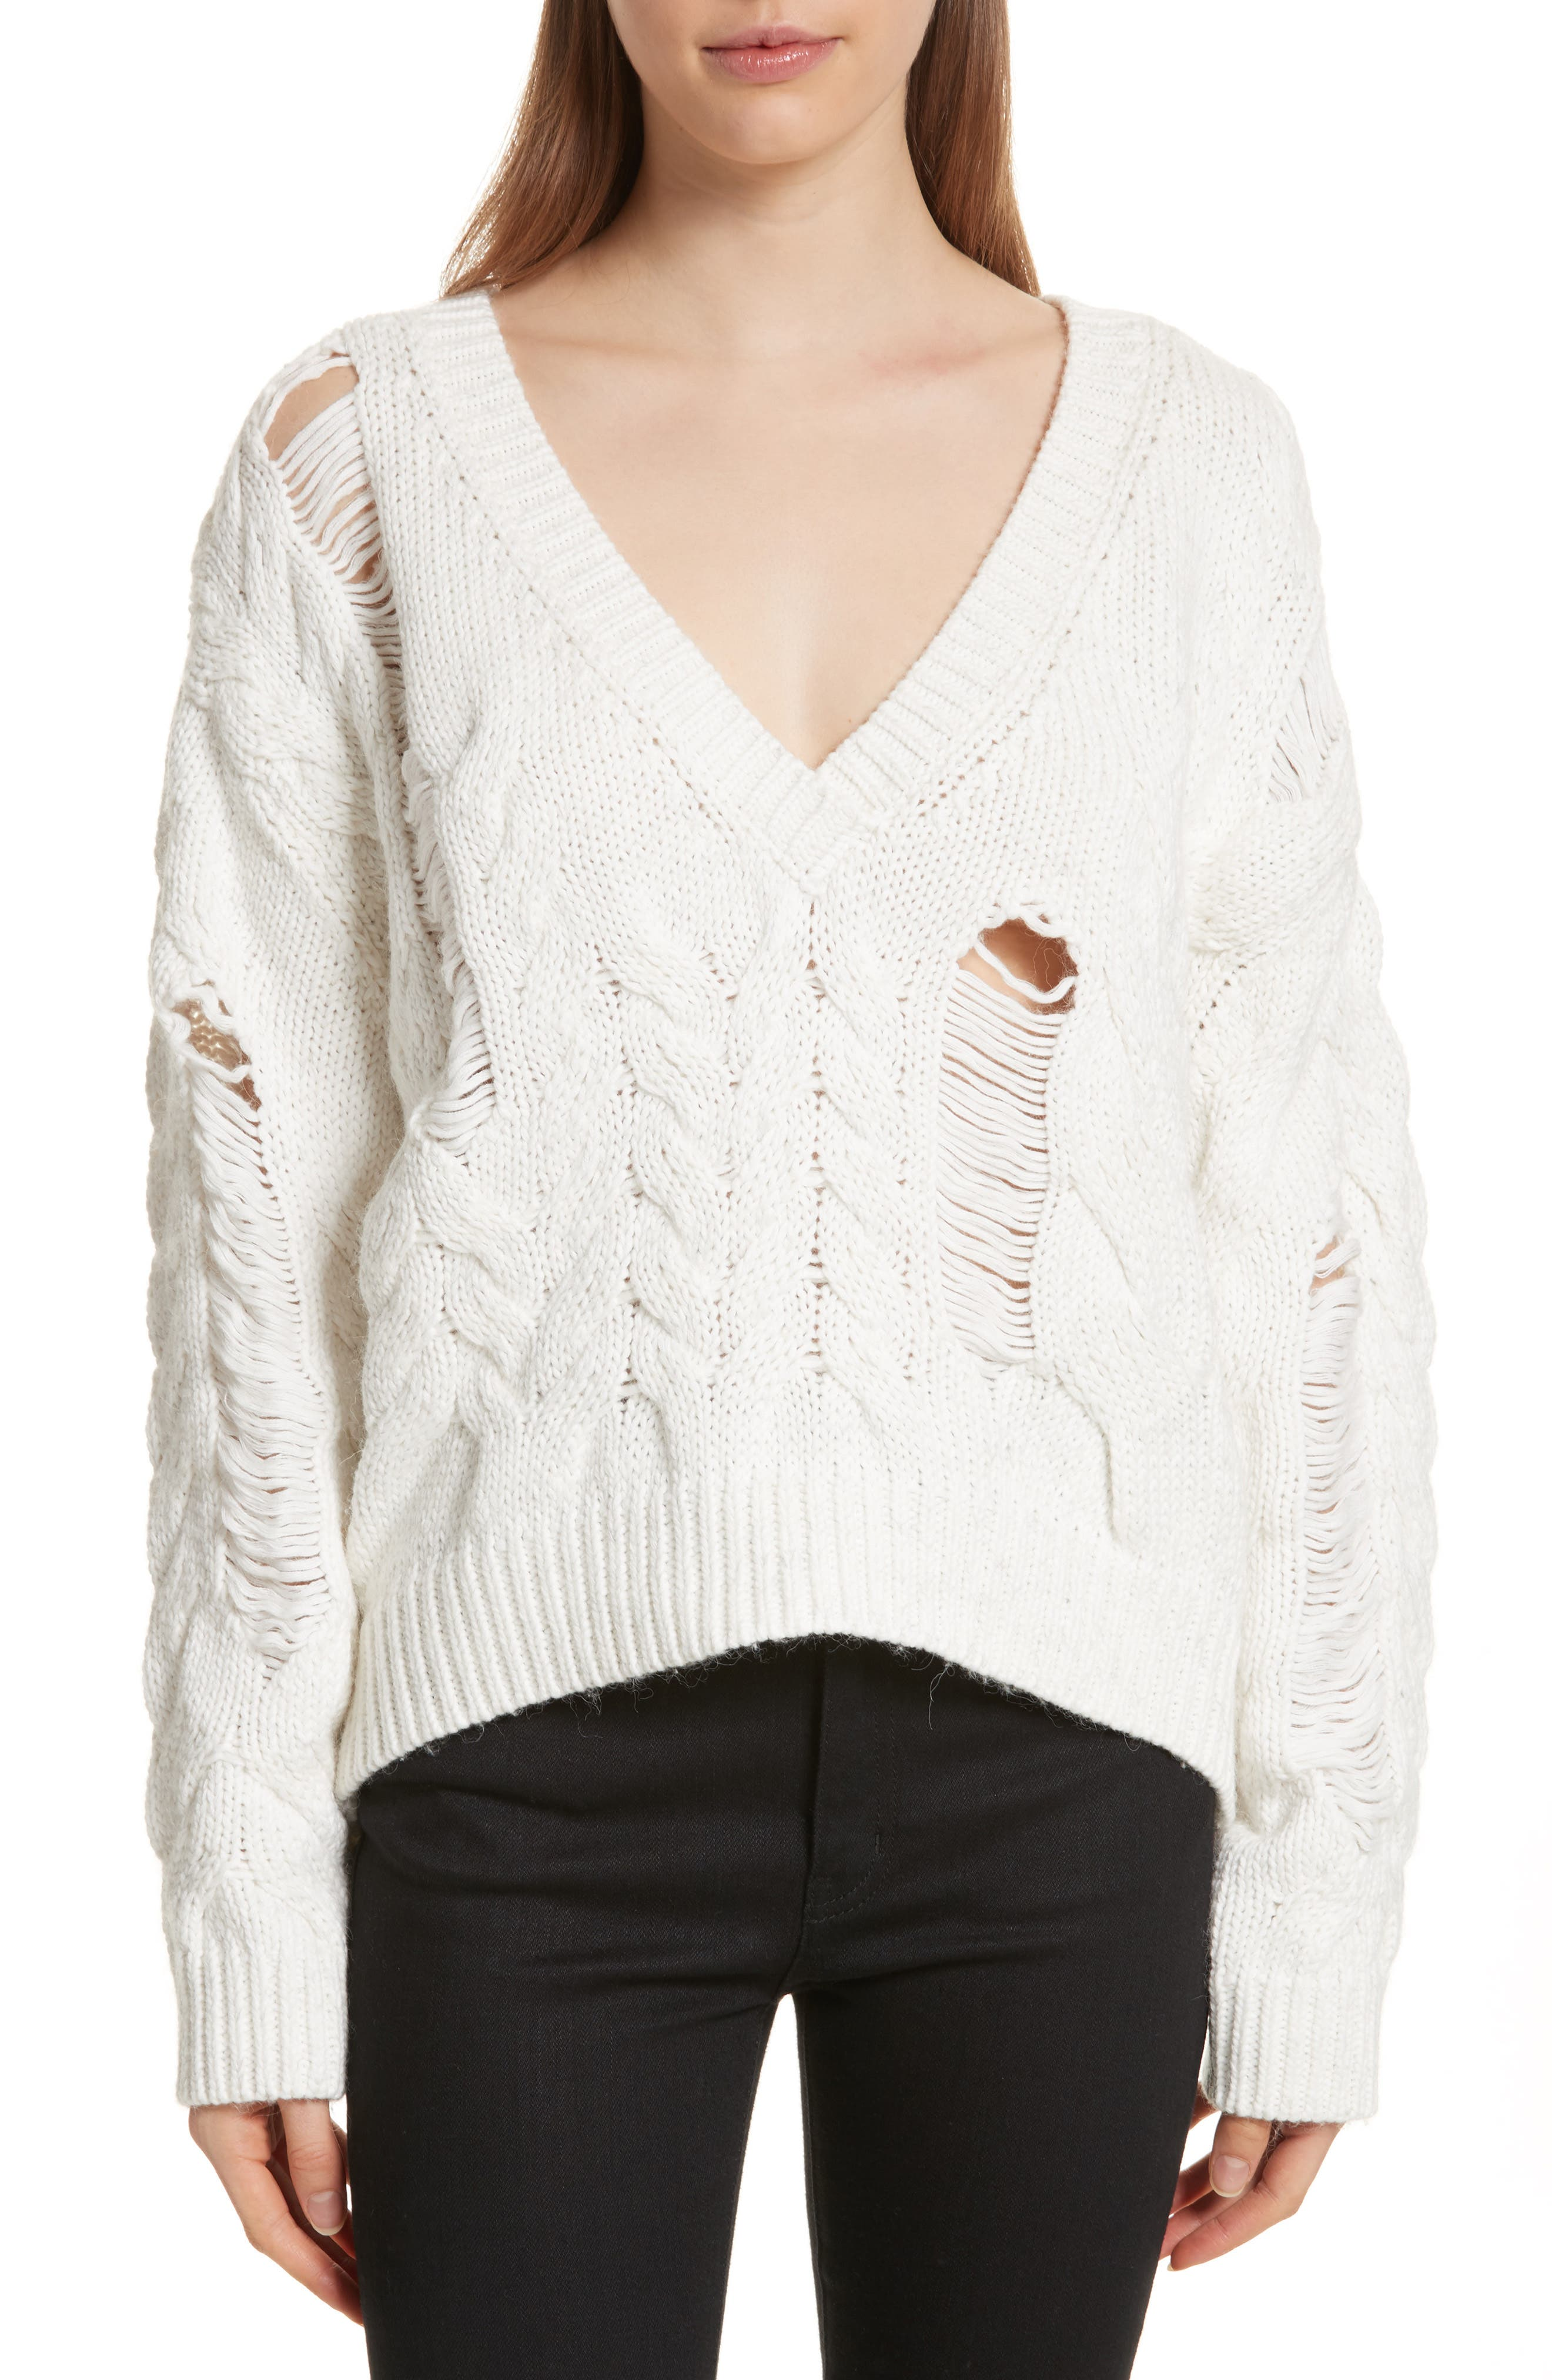 Fighla Distressed Sweater,                             Main thumbnail 1, color,                             010